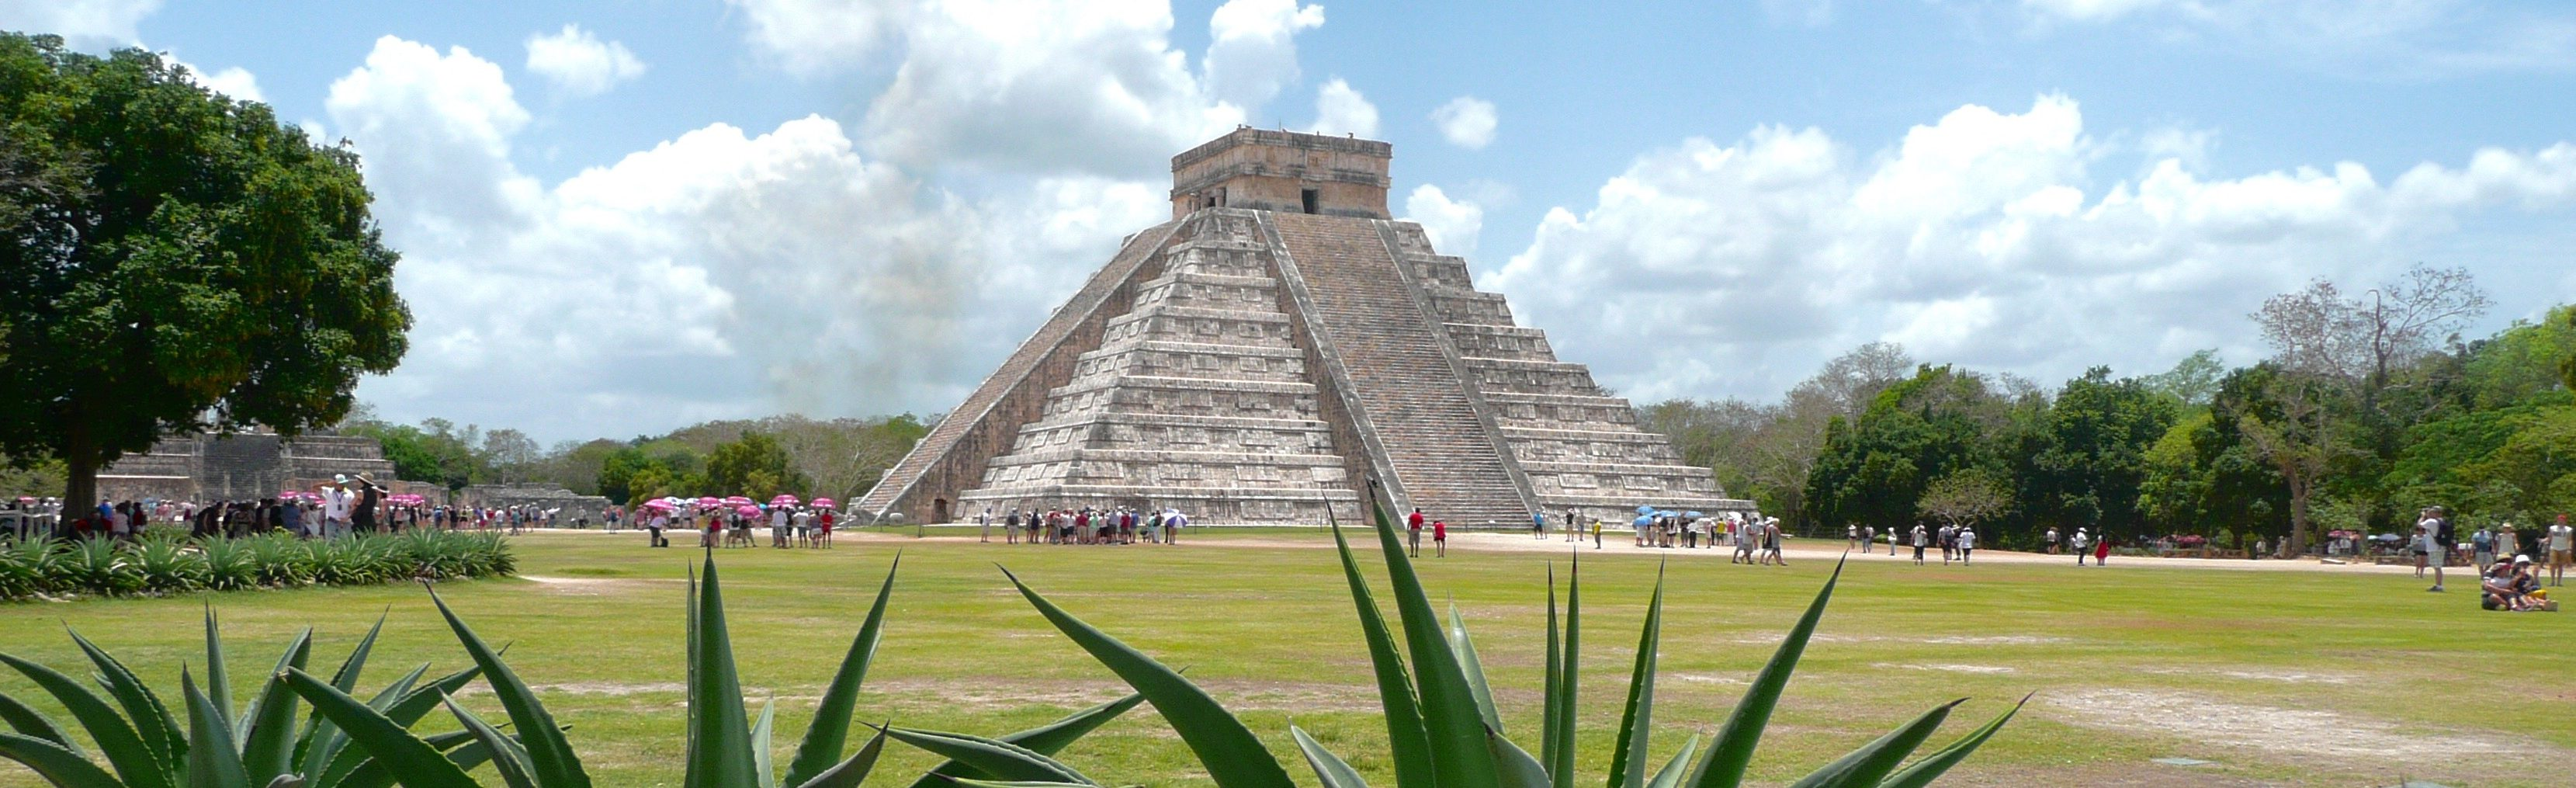 Visiting Chichen Itza on a Cruise Excursion - The Traveling Storygirl